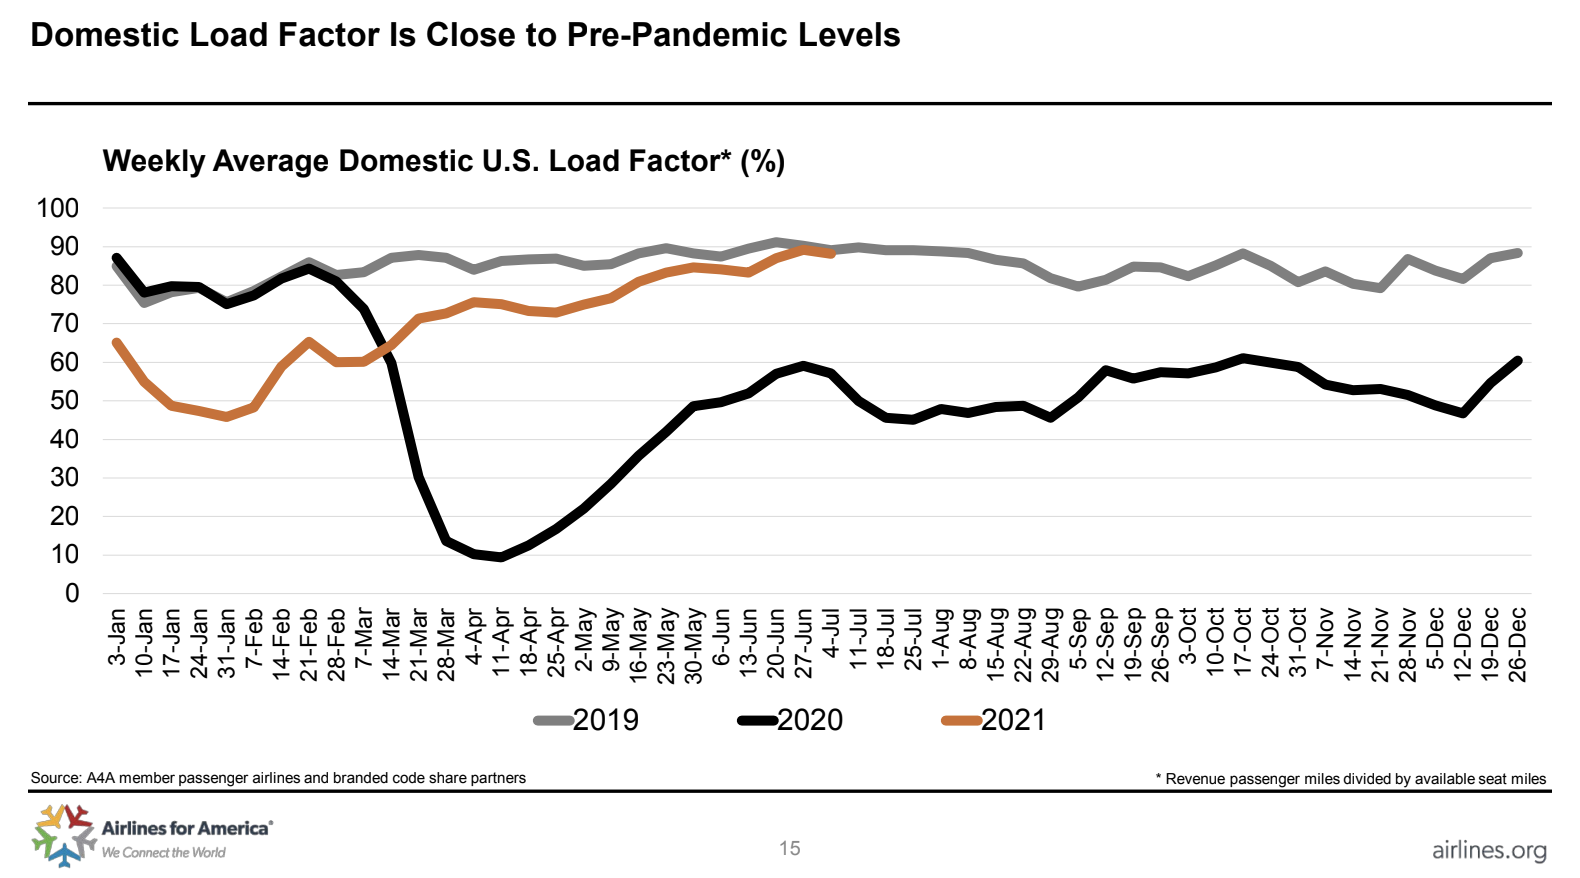 Domestic Load Factor is Close to Pre-Pandemic Levels.